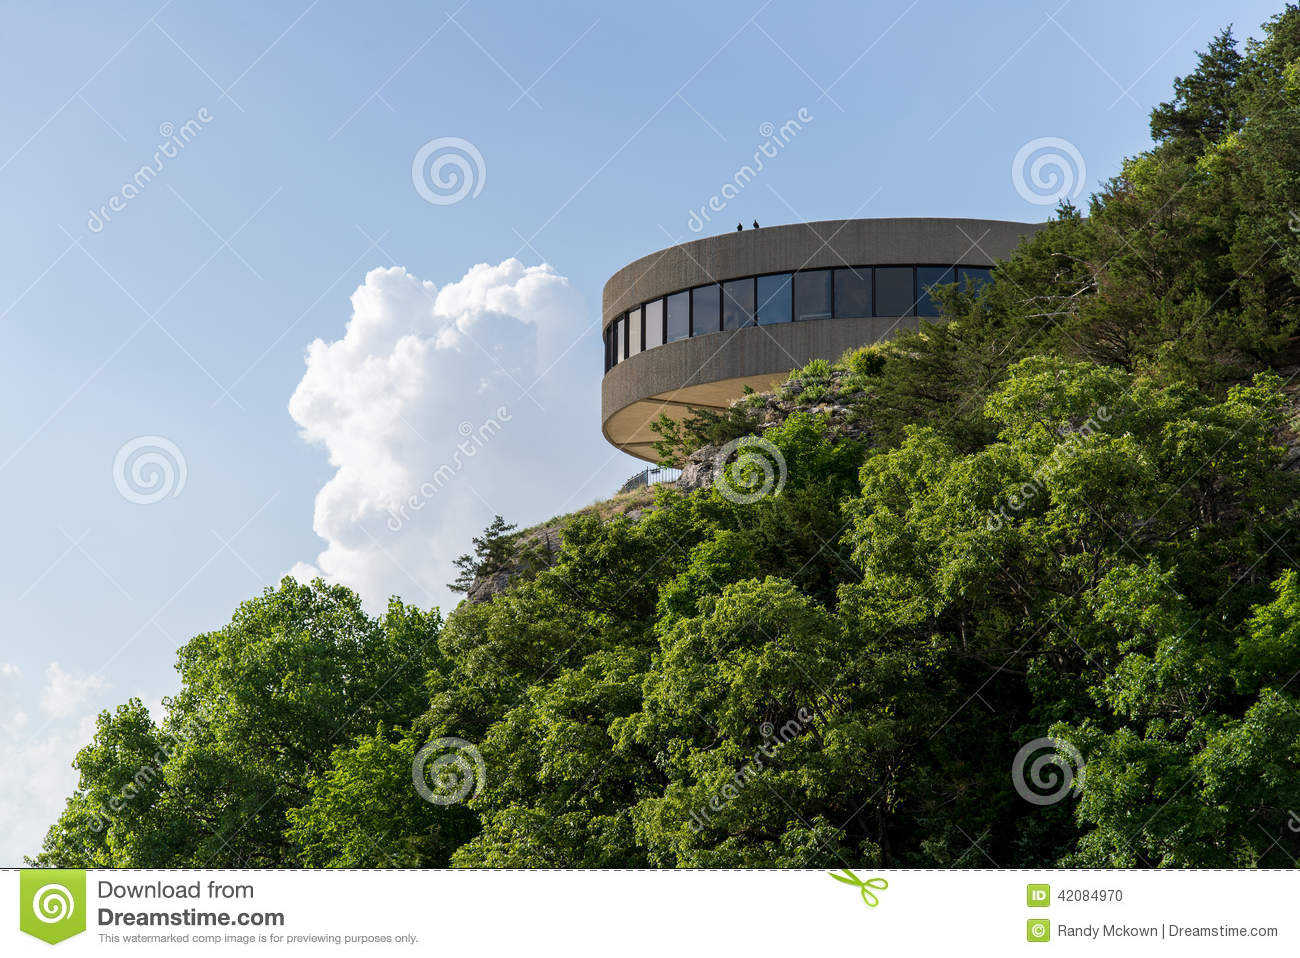 Modern Architecture Building On Hilltop Cliff Surrounded By Green